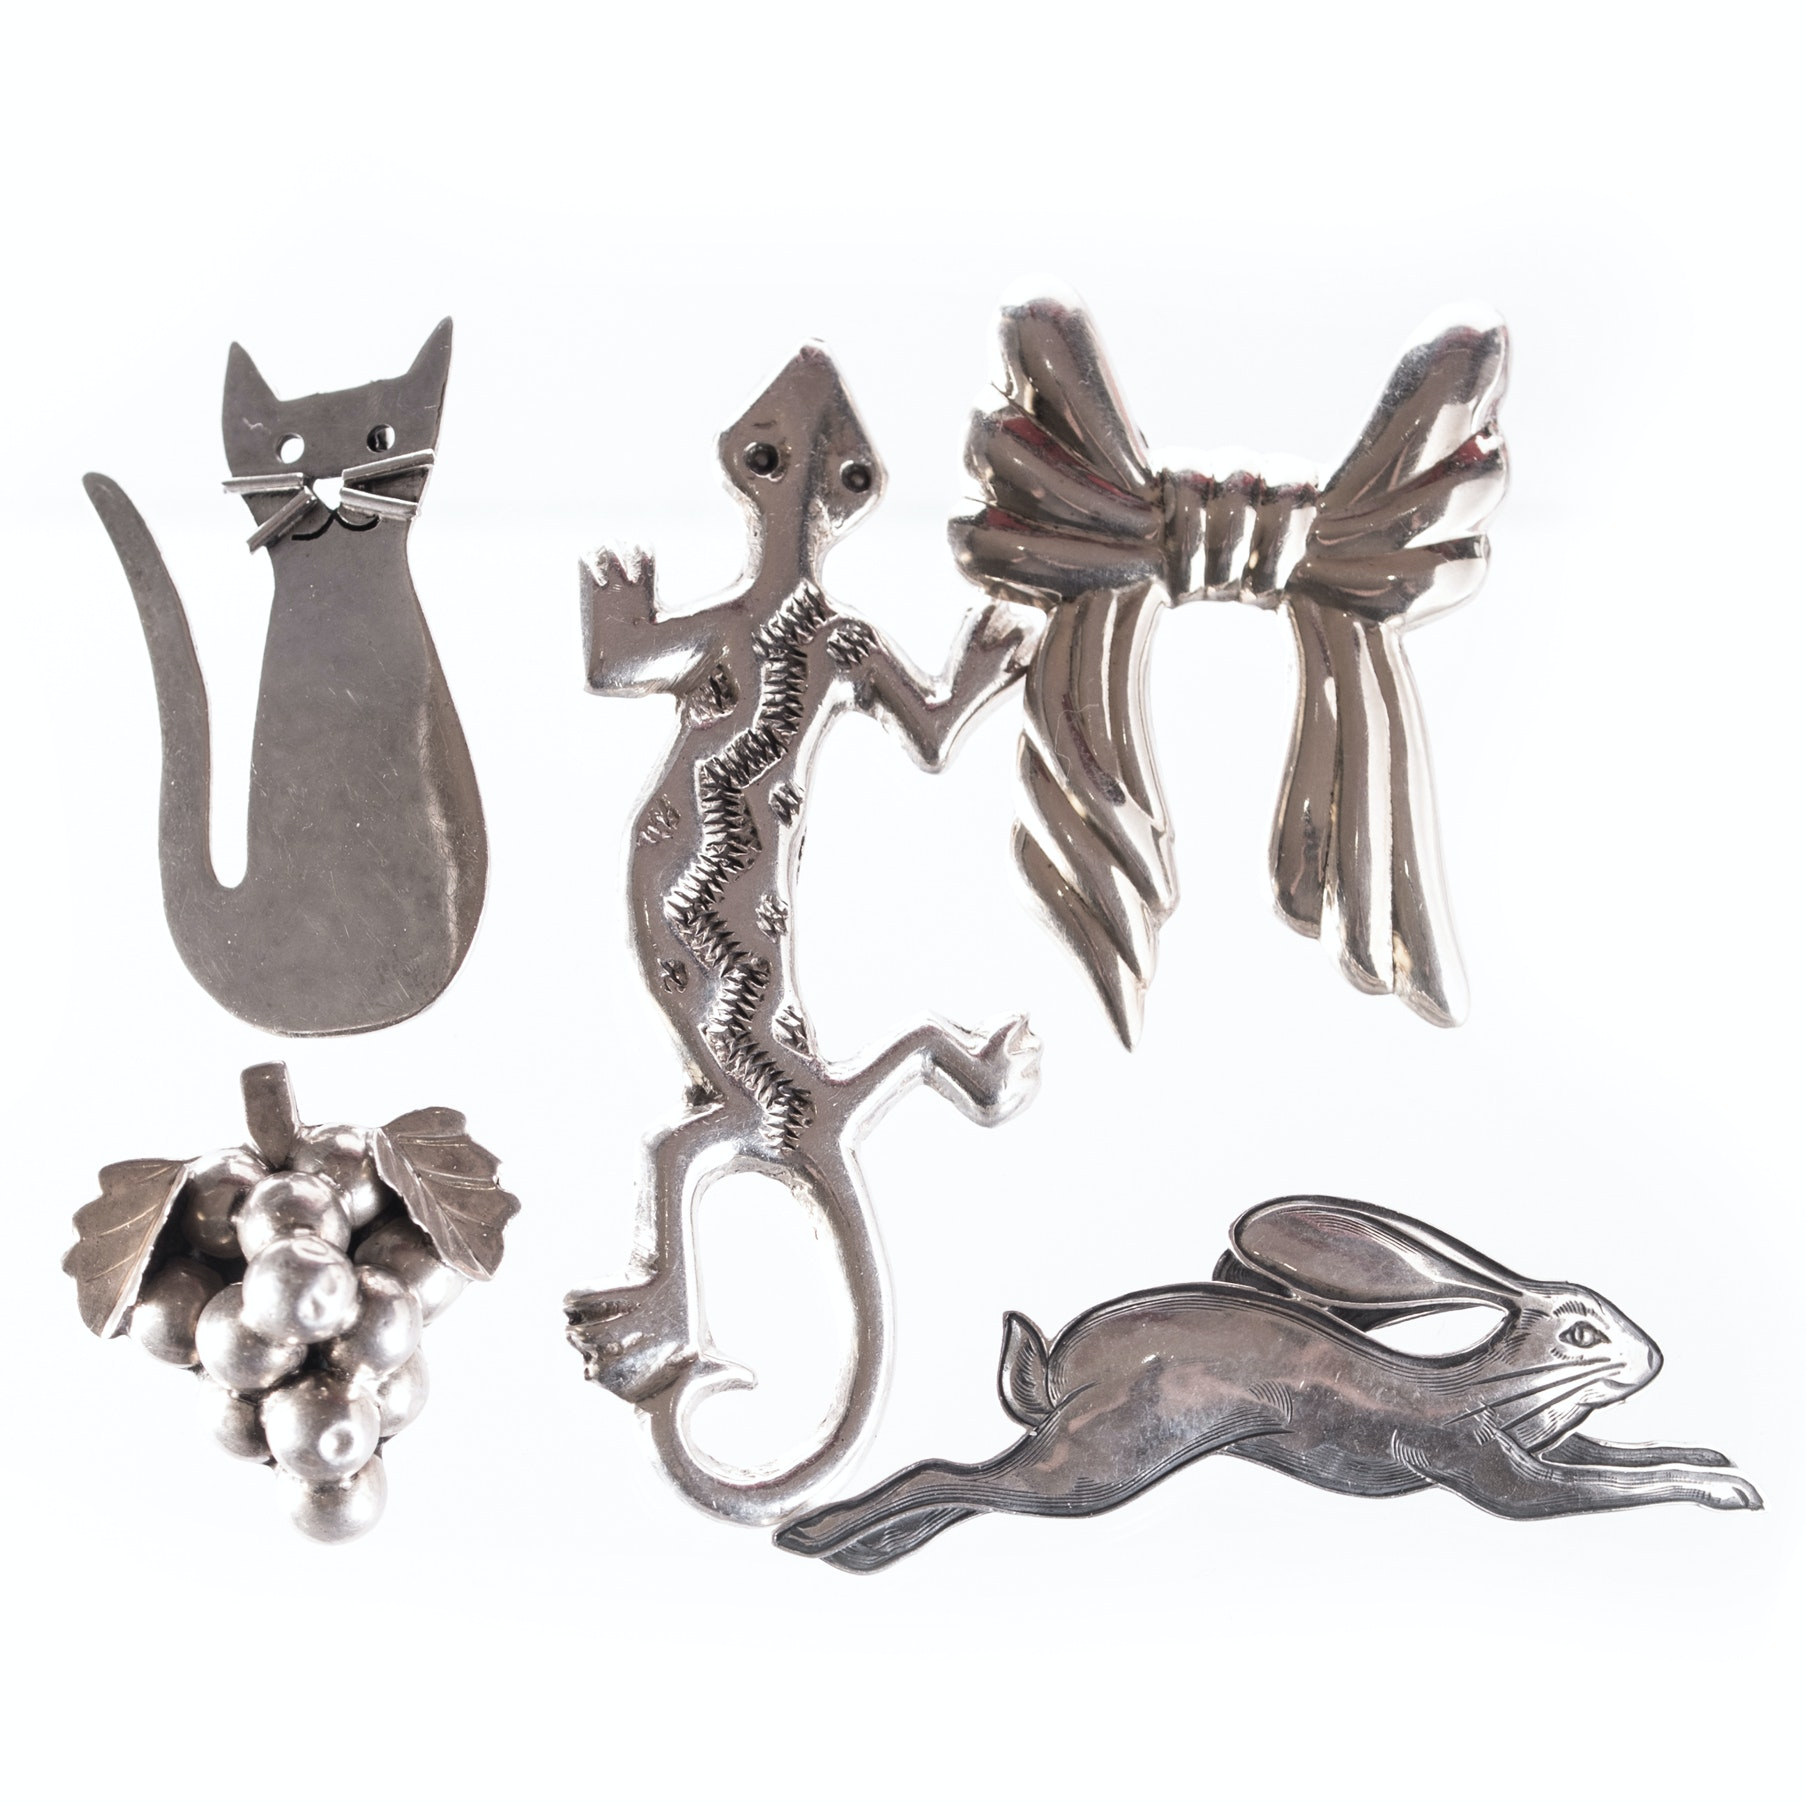 Assortment of Sterling Silver Brooches